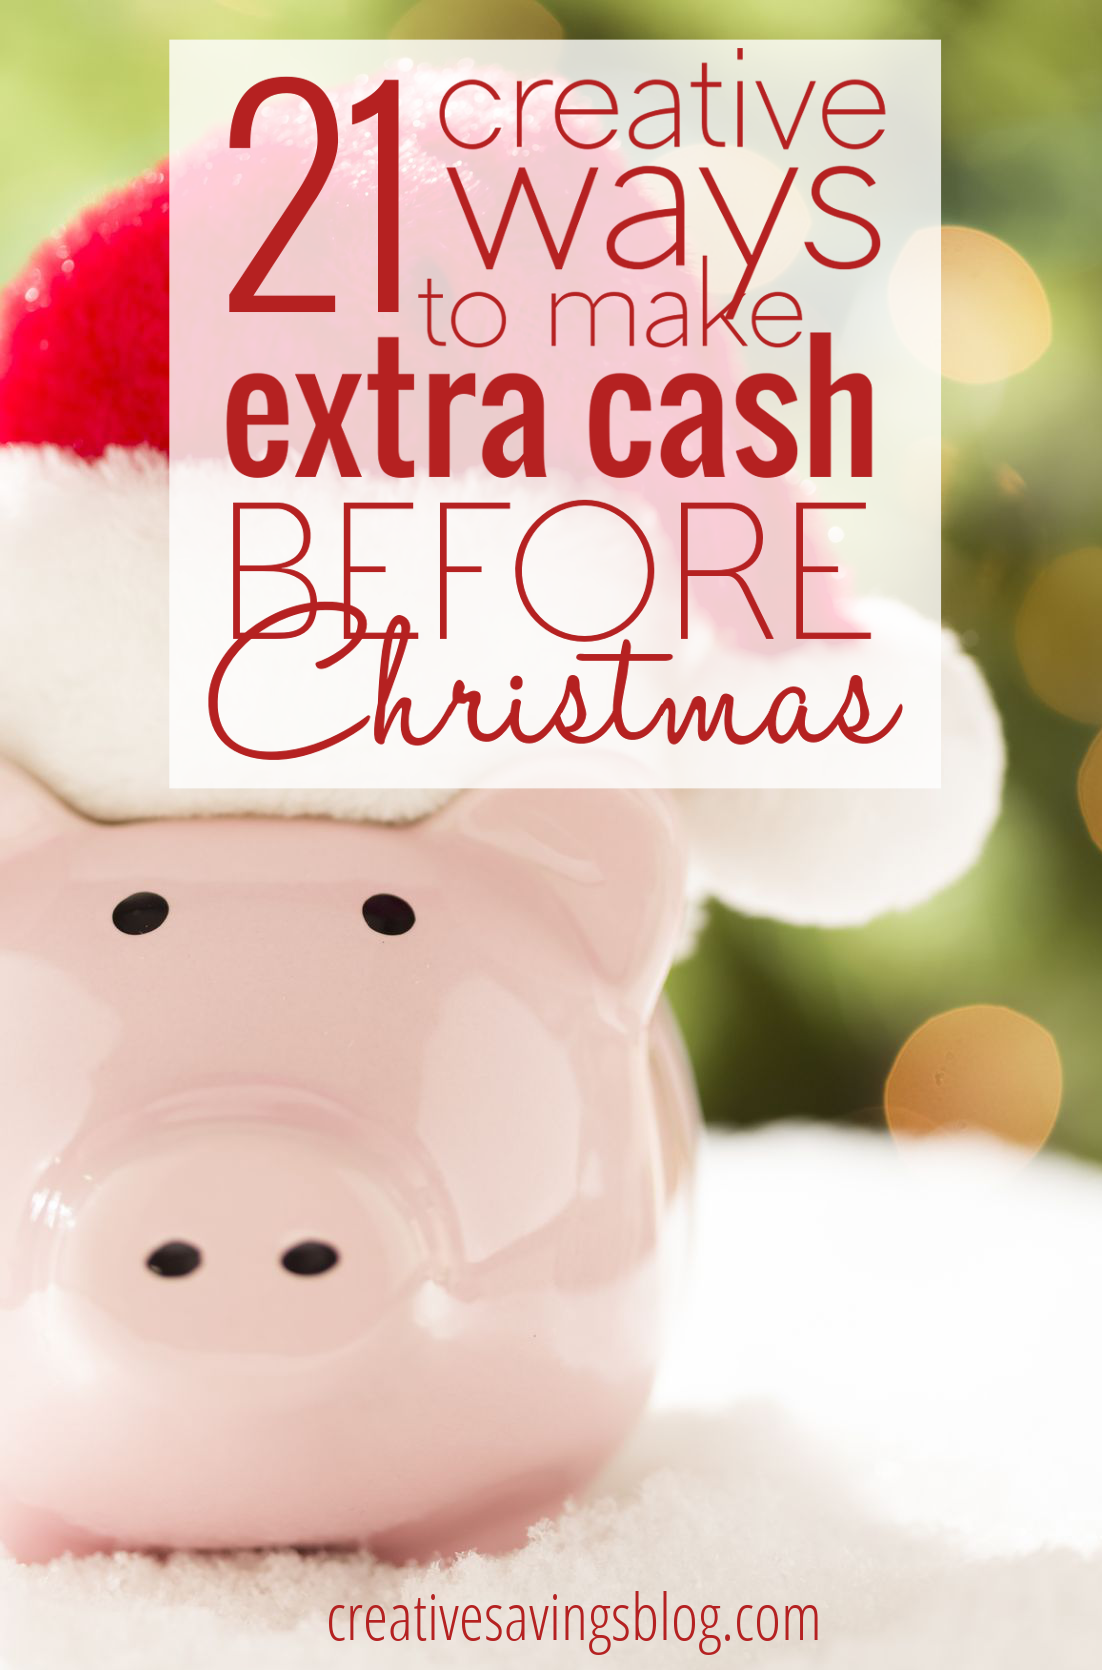 Here are 21 ways to make extra cash before Christmas, including legitimate work-from-home opportunities, and how to trade in your junk for maximum profit!